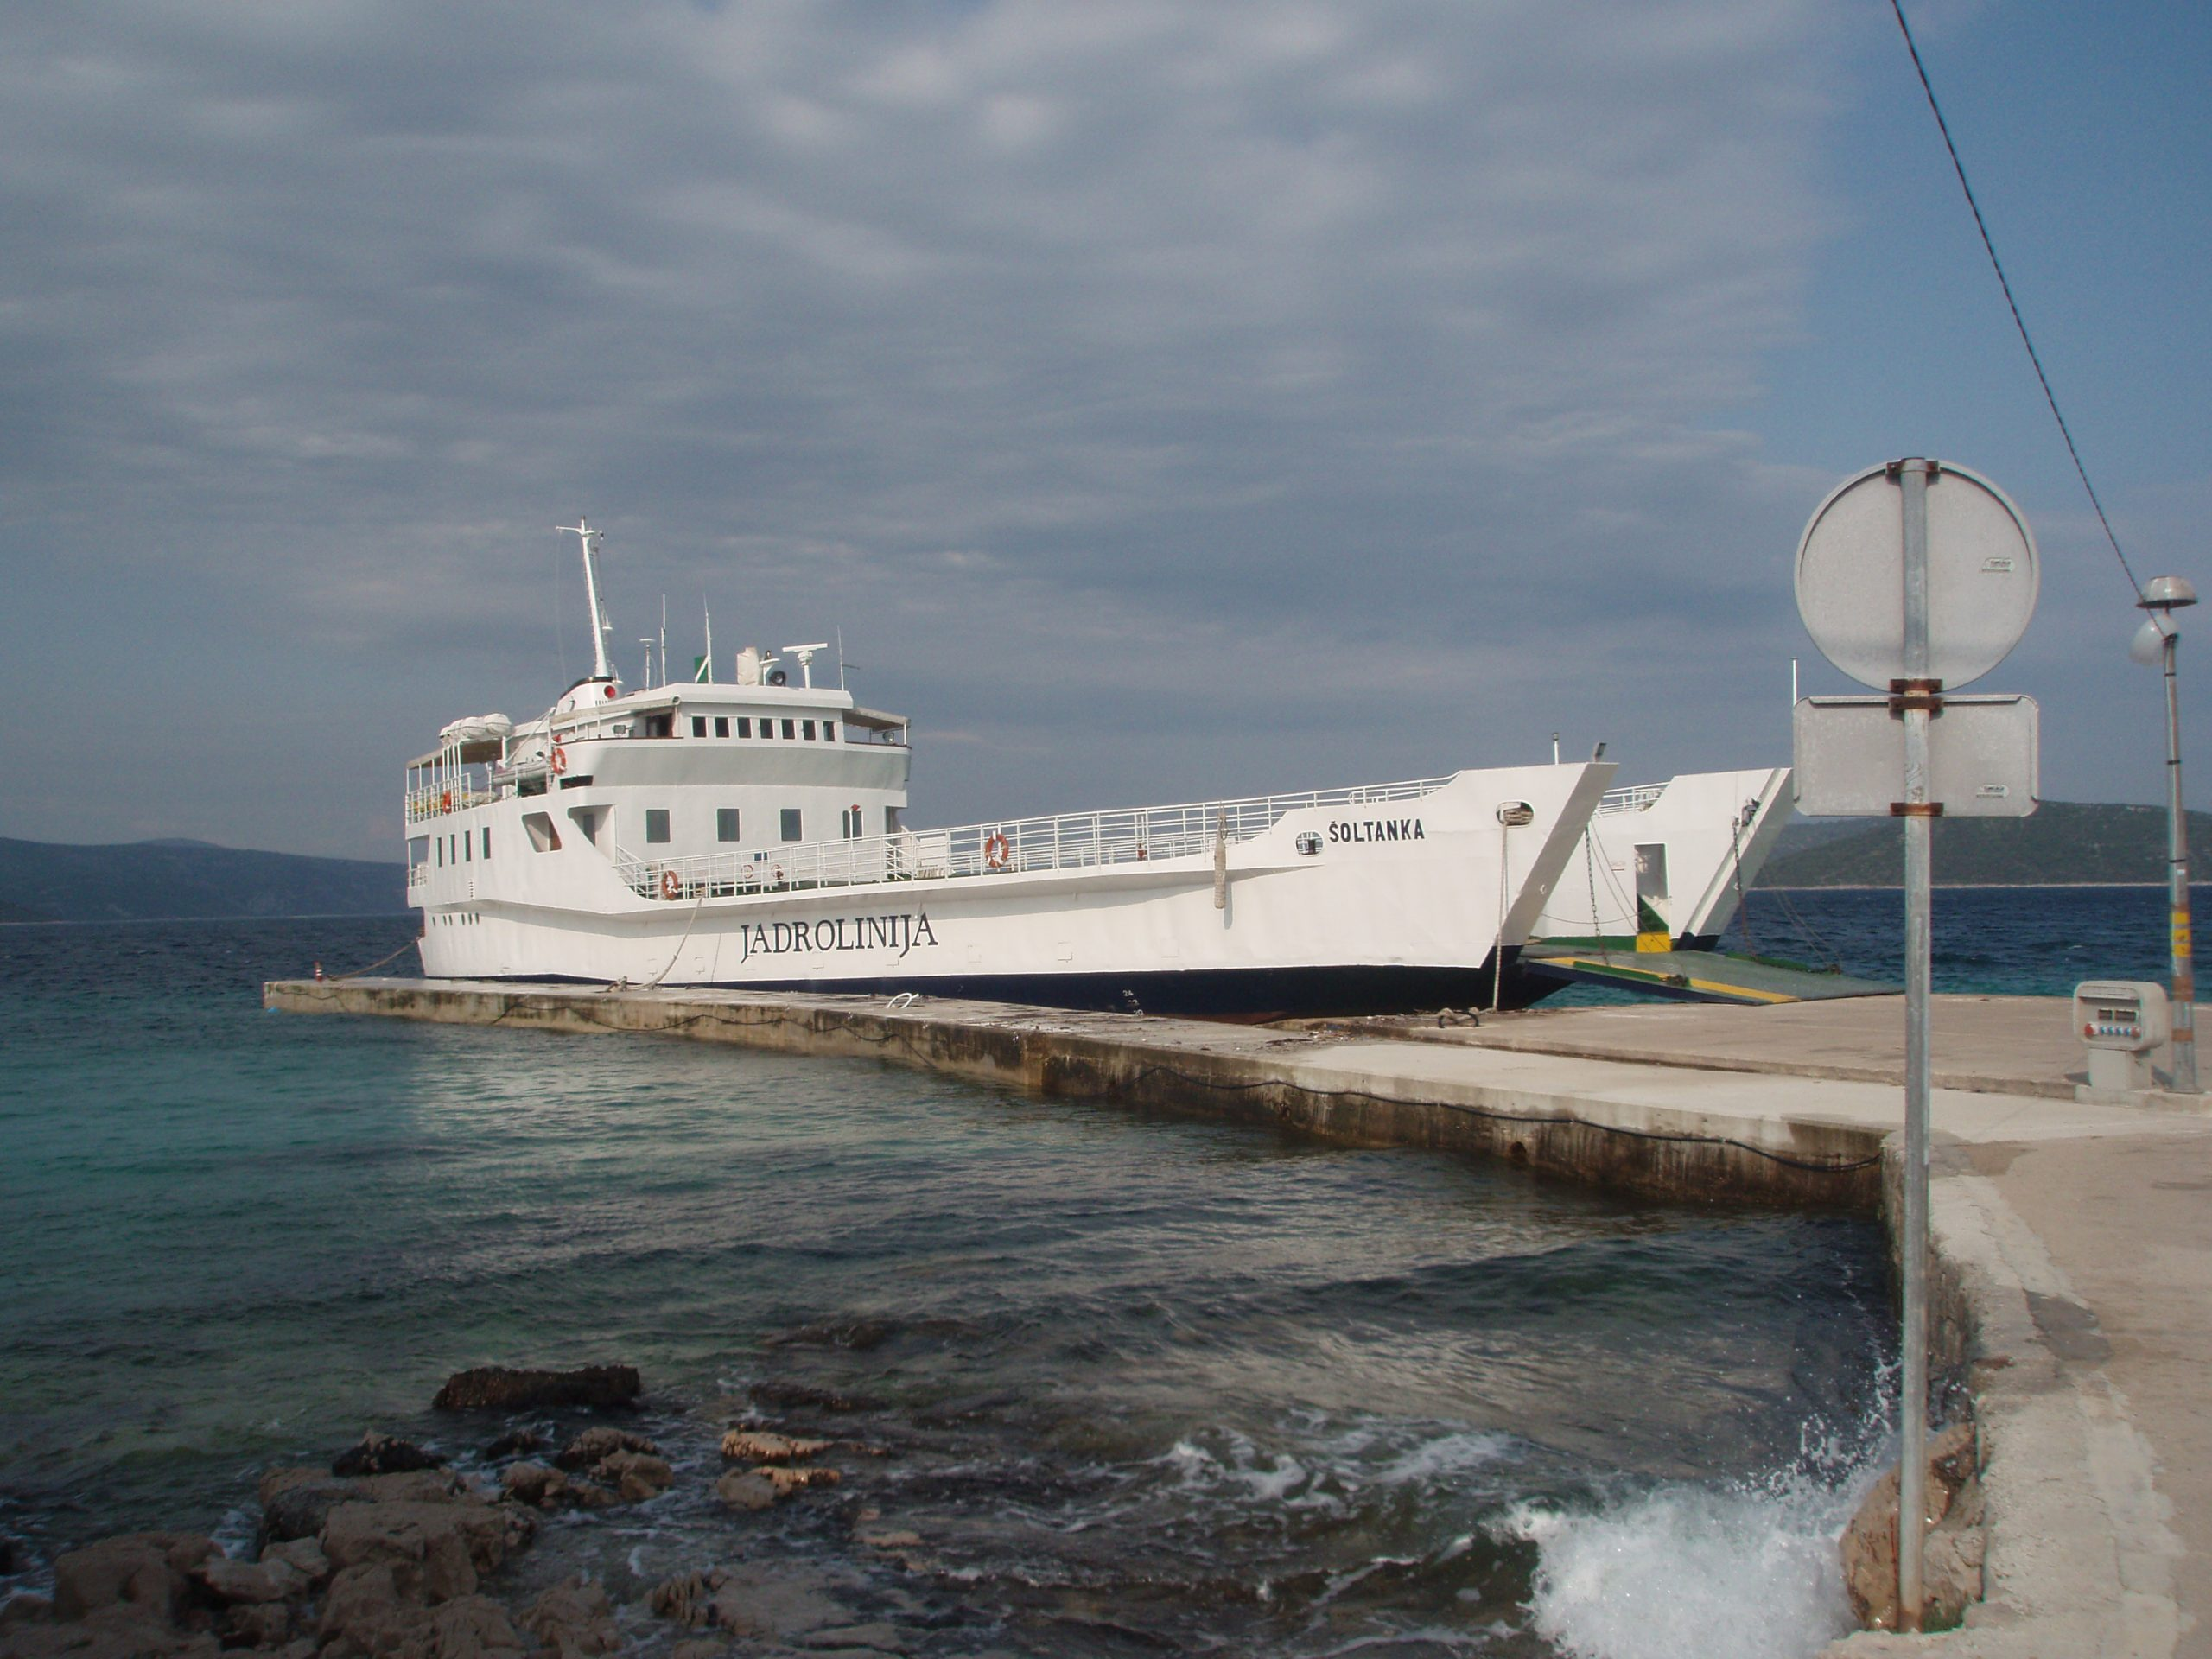 Šoltanka ferry at the dock on Drvenik Mali. On a Monday in May, the ferry carried Croatian vacationers, retired people, construction workers, and the priest from Trogir, who was rehearsing his sermon leaning over the railings, book in hands, reading out to the waves. He was the first to jump off the ferry, hurrying toward the nearby church as the ship was leaving the island in an hour, and he had to be on it.